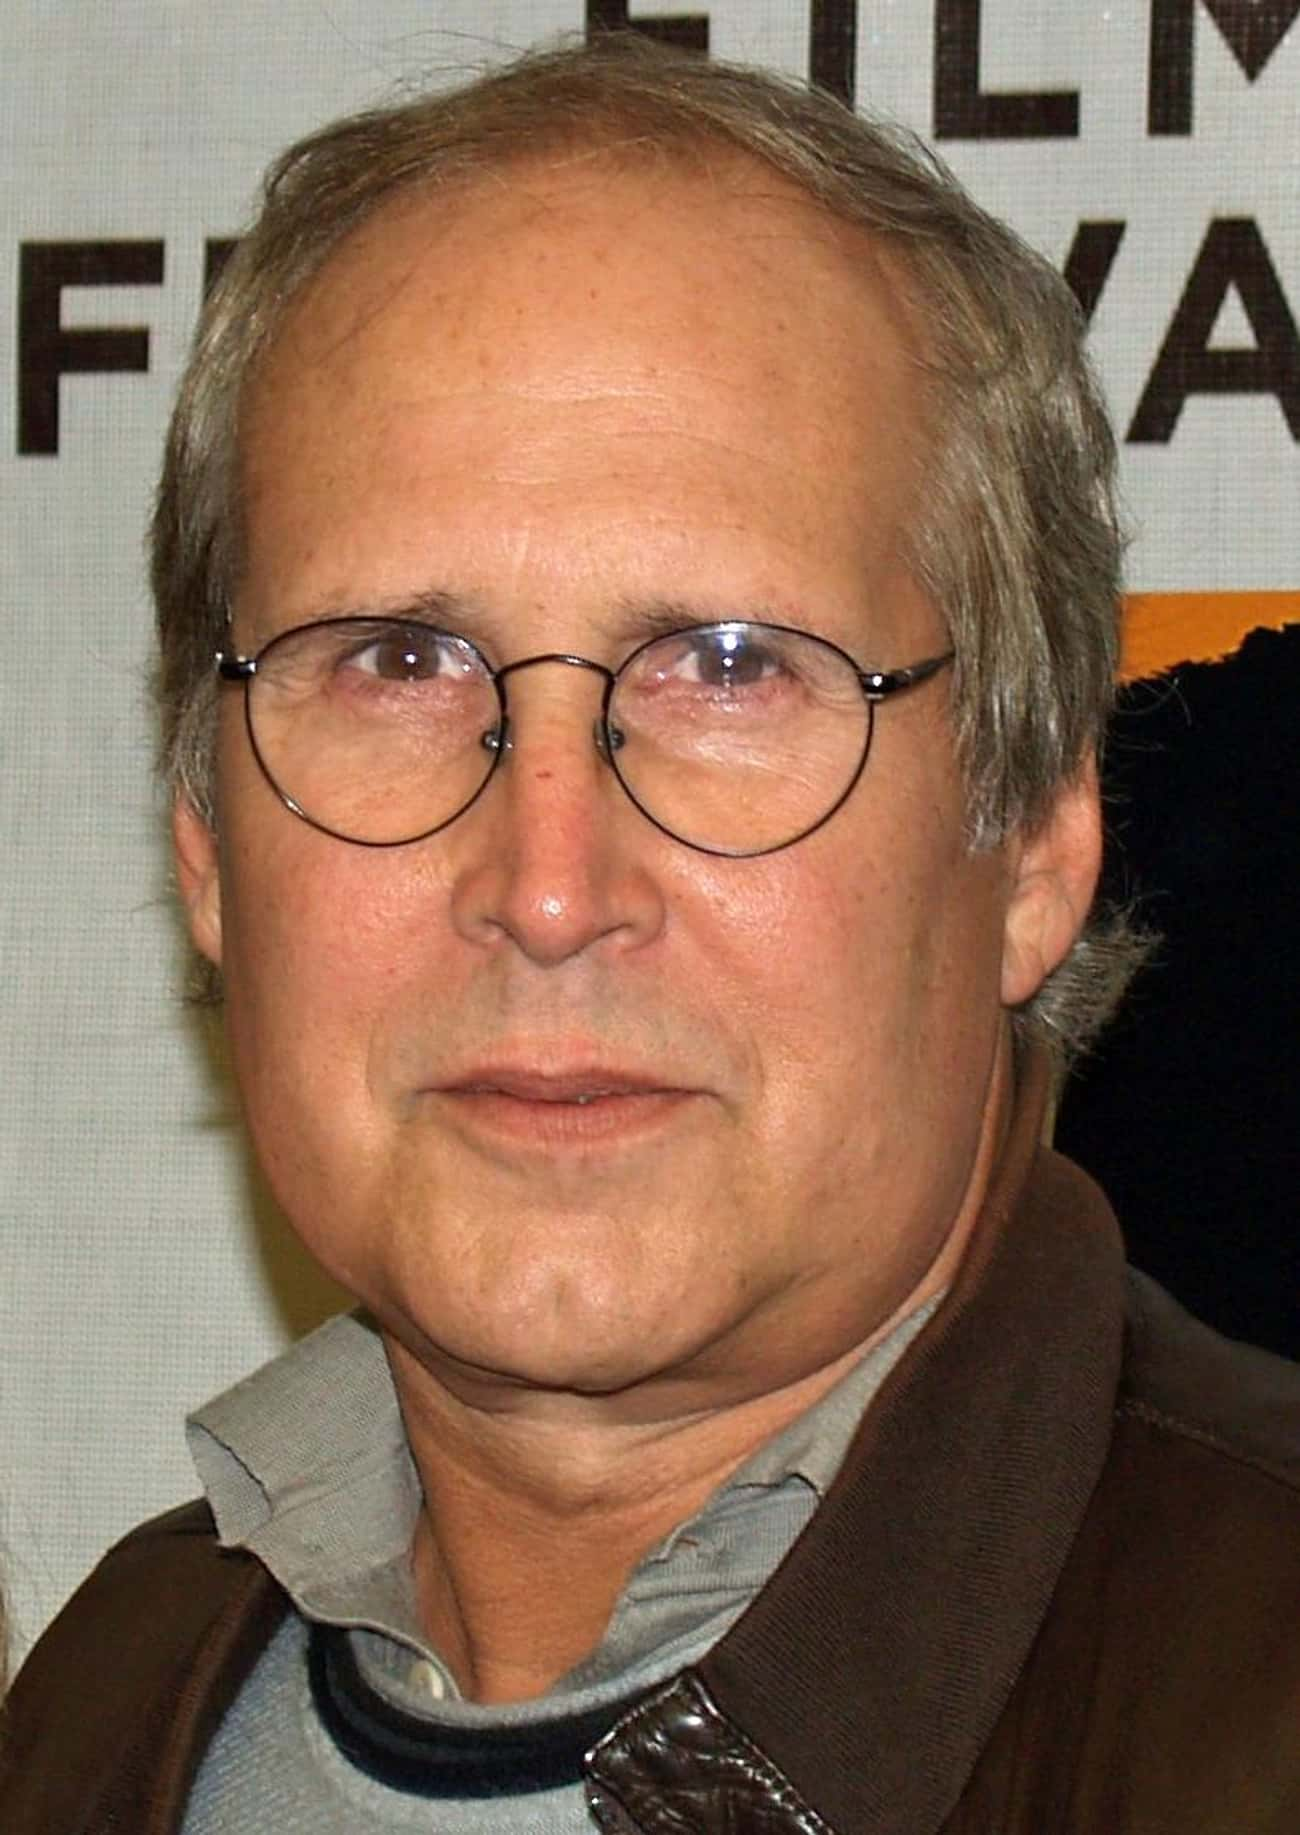 Chevy Chase is listed (or ranked) 1 on the list Famous People Born in 1943